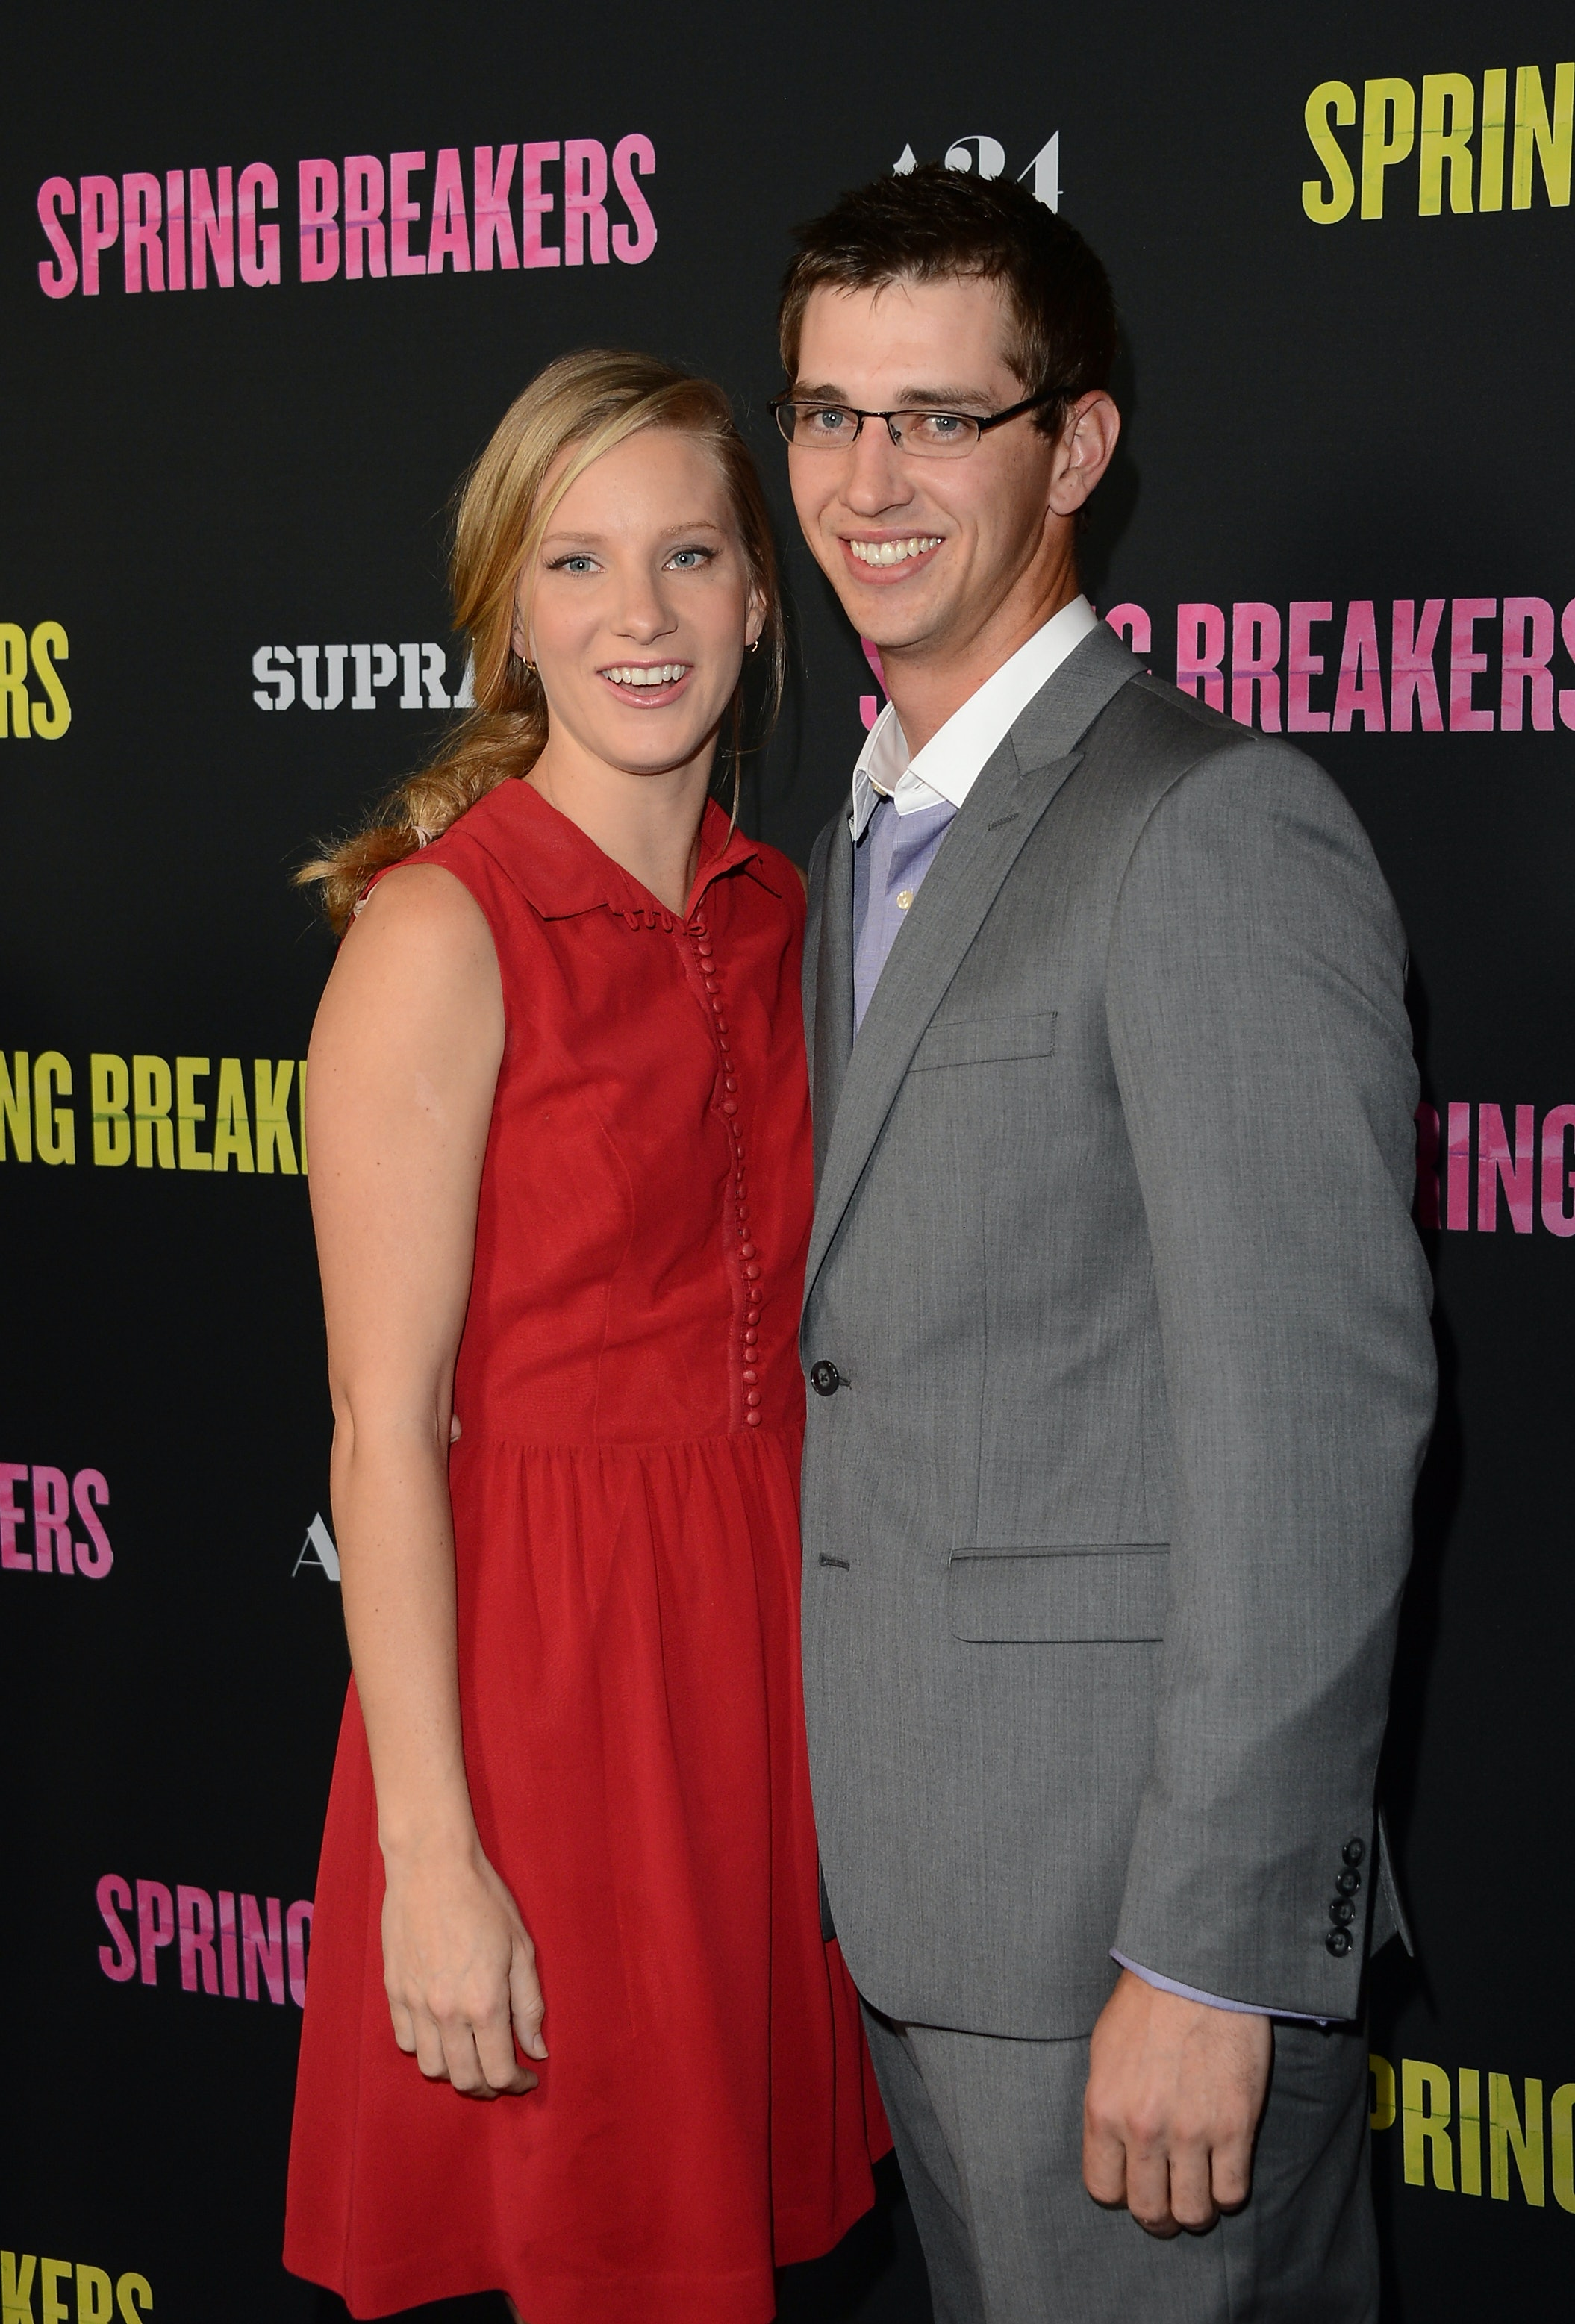 Is heather morris dating anyone